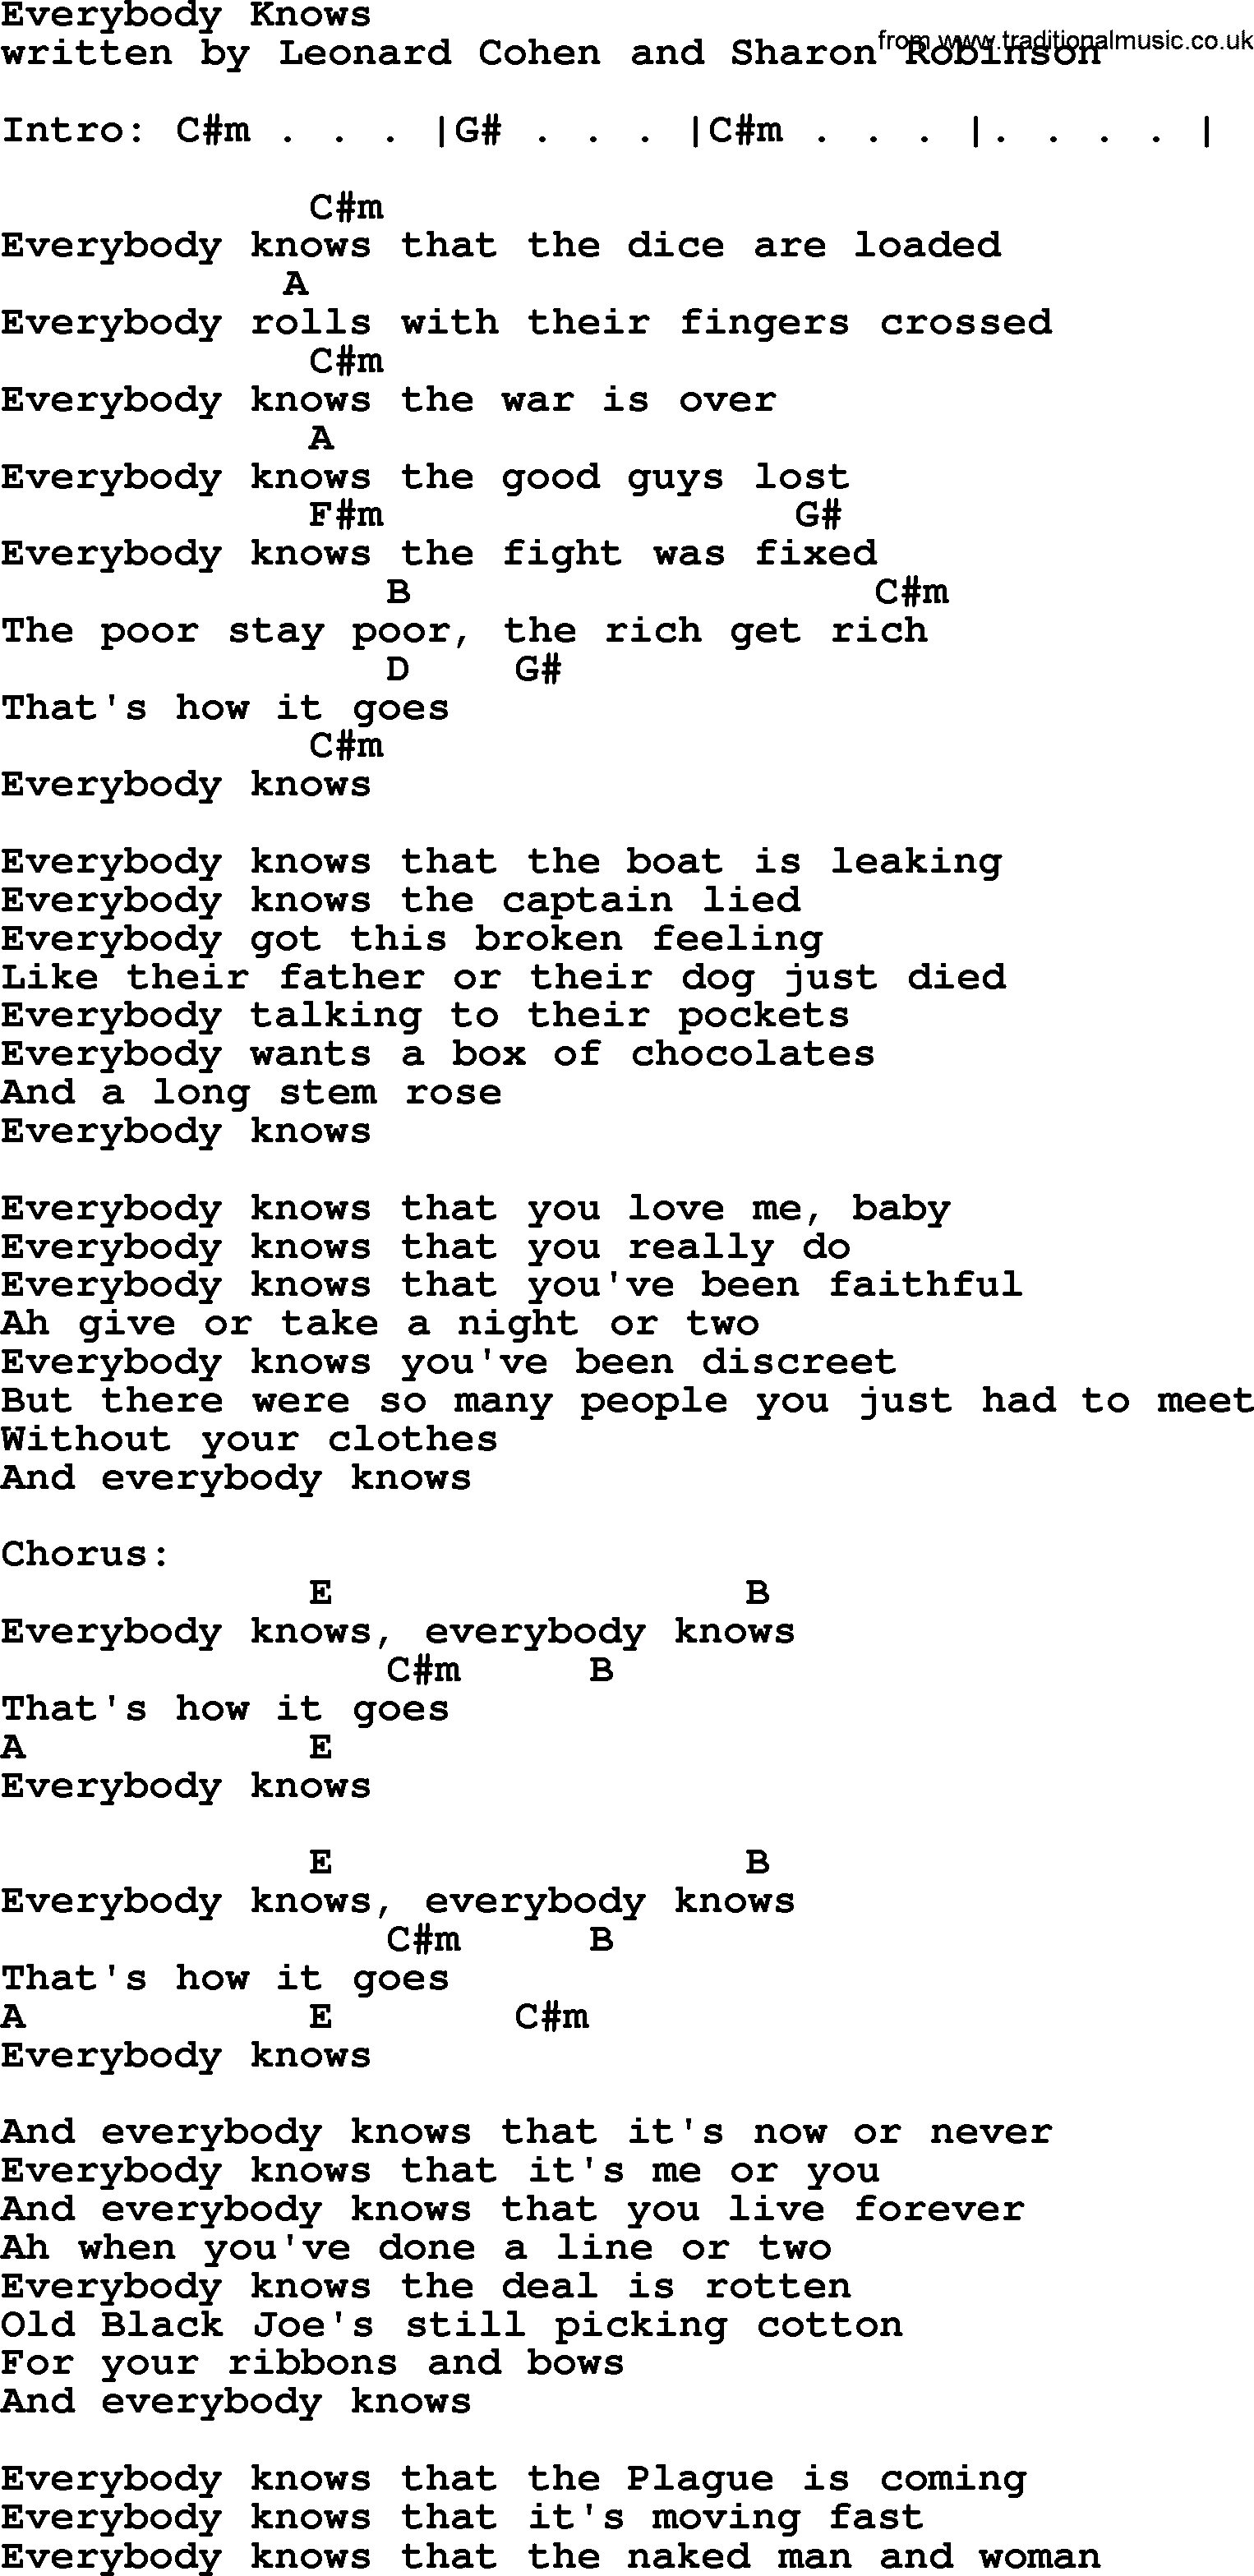 Leonard cohen song everybody knows lyrics and chords guitar leonard cohen song everybody knows lyrics and chords hexwebz Choice Image